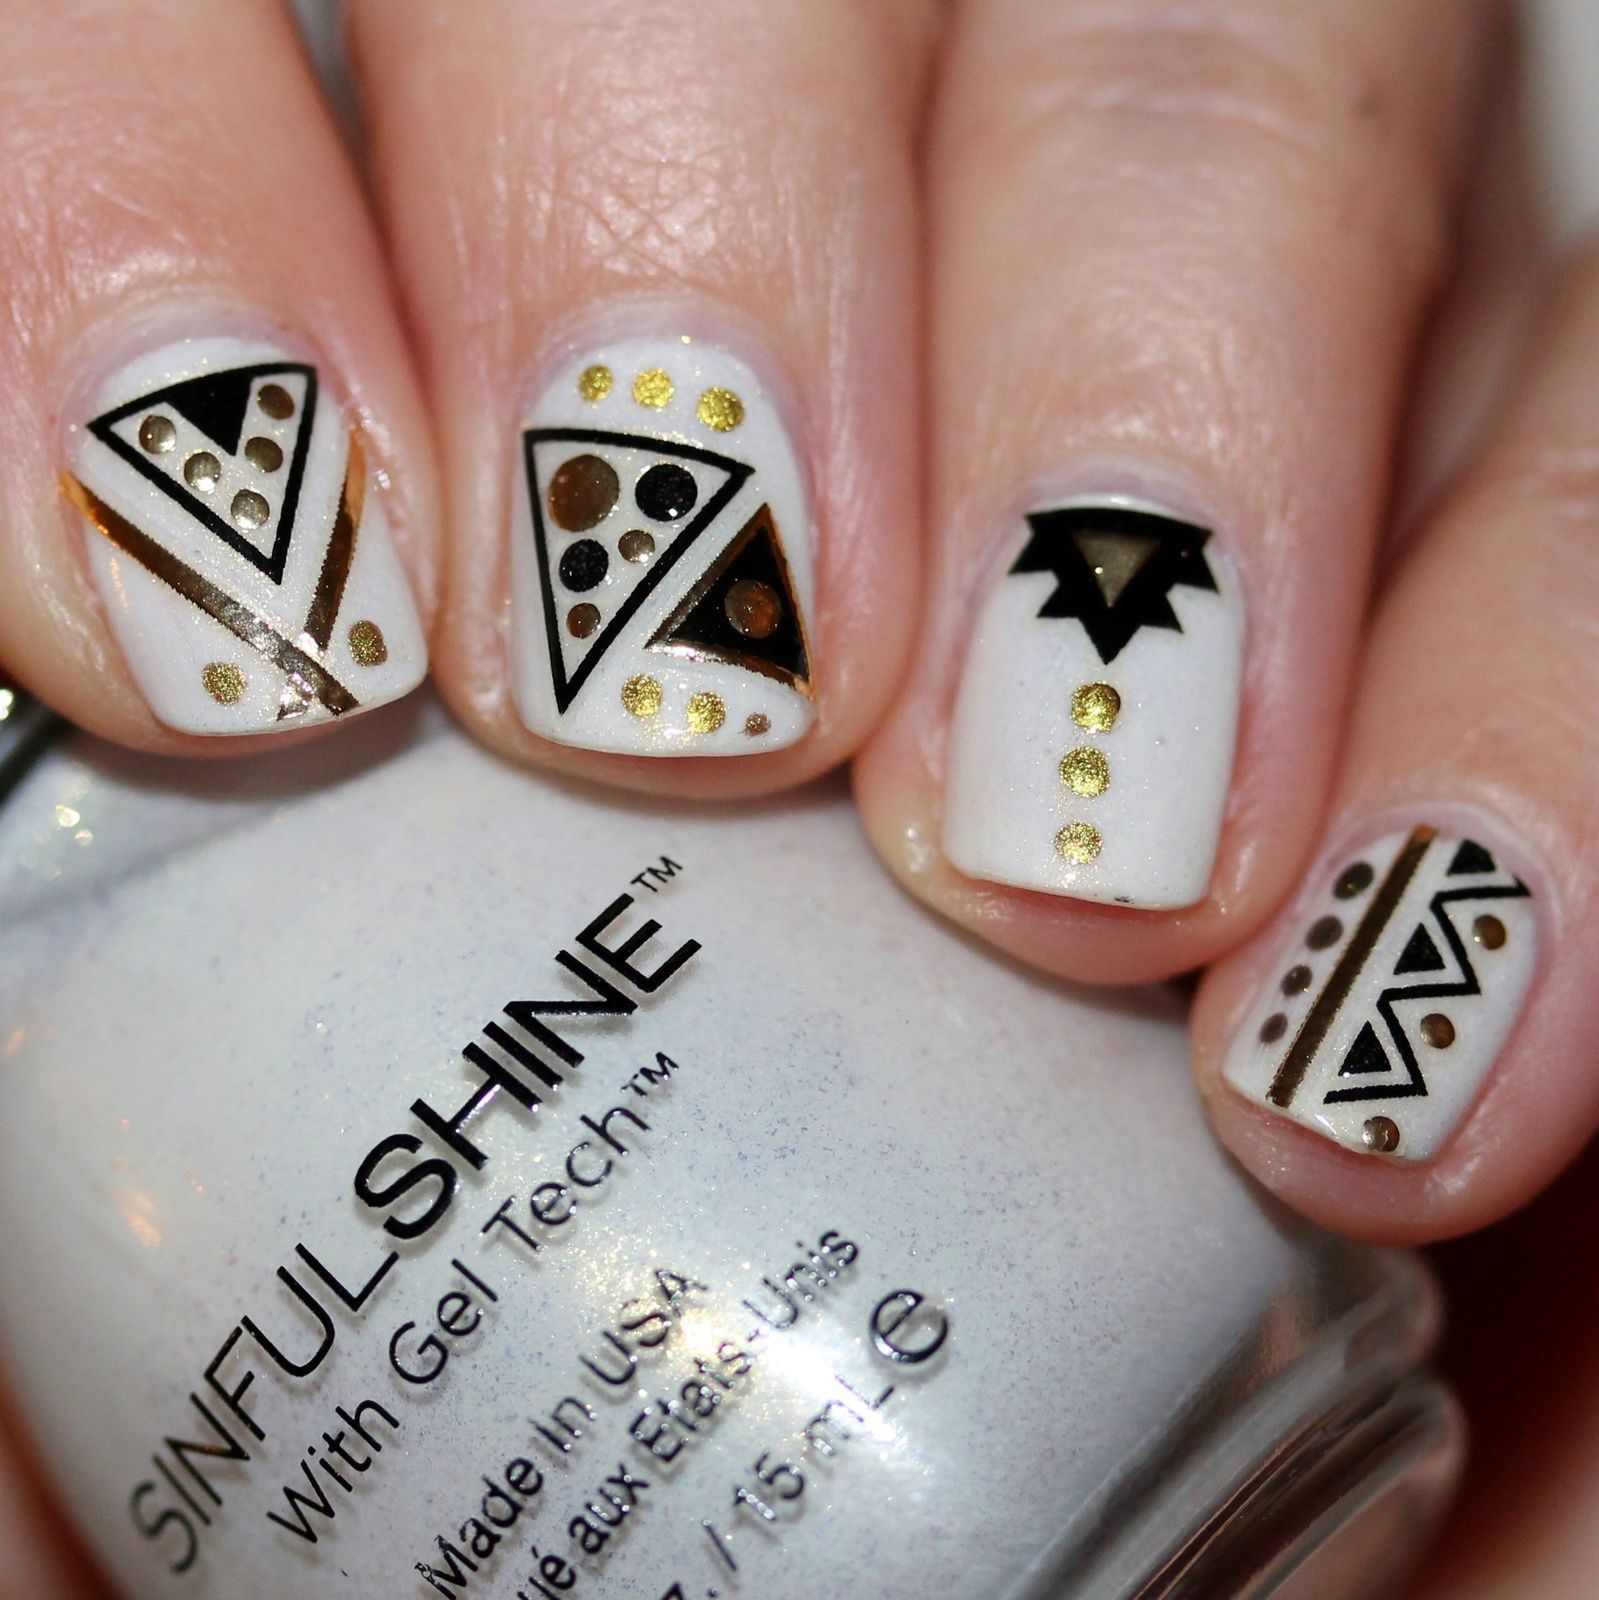 ally Hansen Complete Care 4-in-1 Extra Moisturizing Nail Treatment / Sinful Colors Koko-Nuts / Kiss Nails Polish Pop Stickers 62295 NPOP02 / Native War Paints Hurry, Hurry!Top Coat